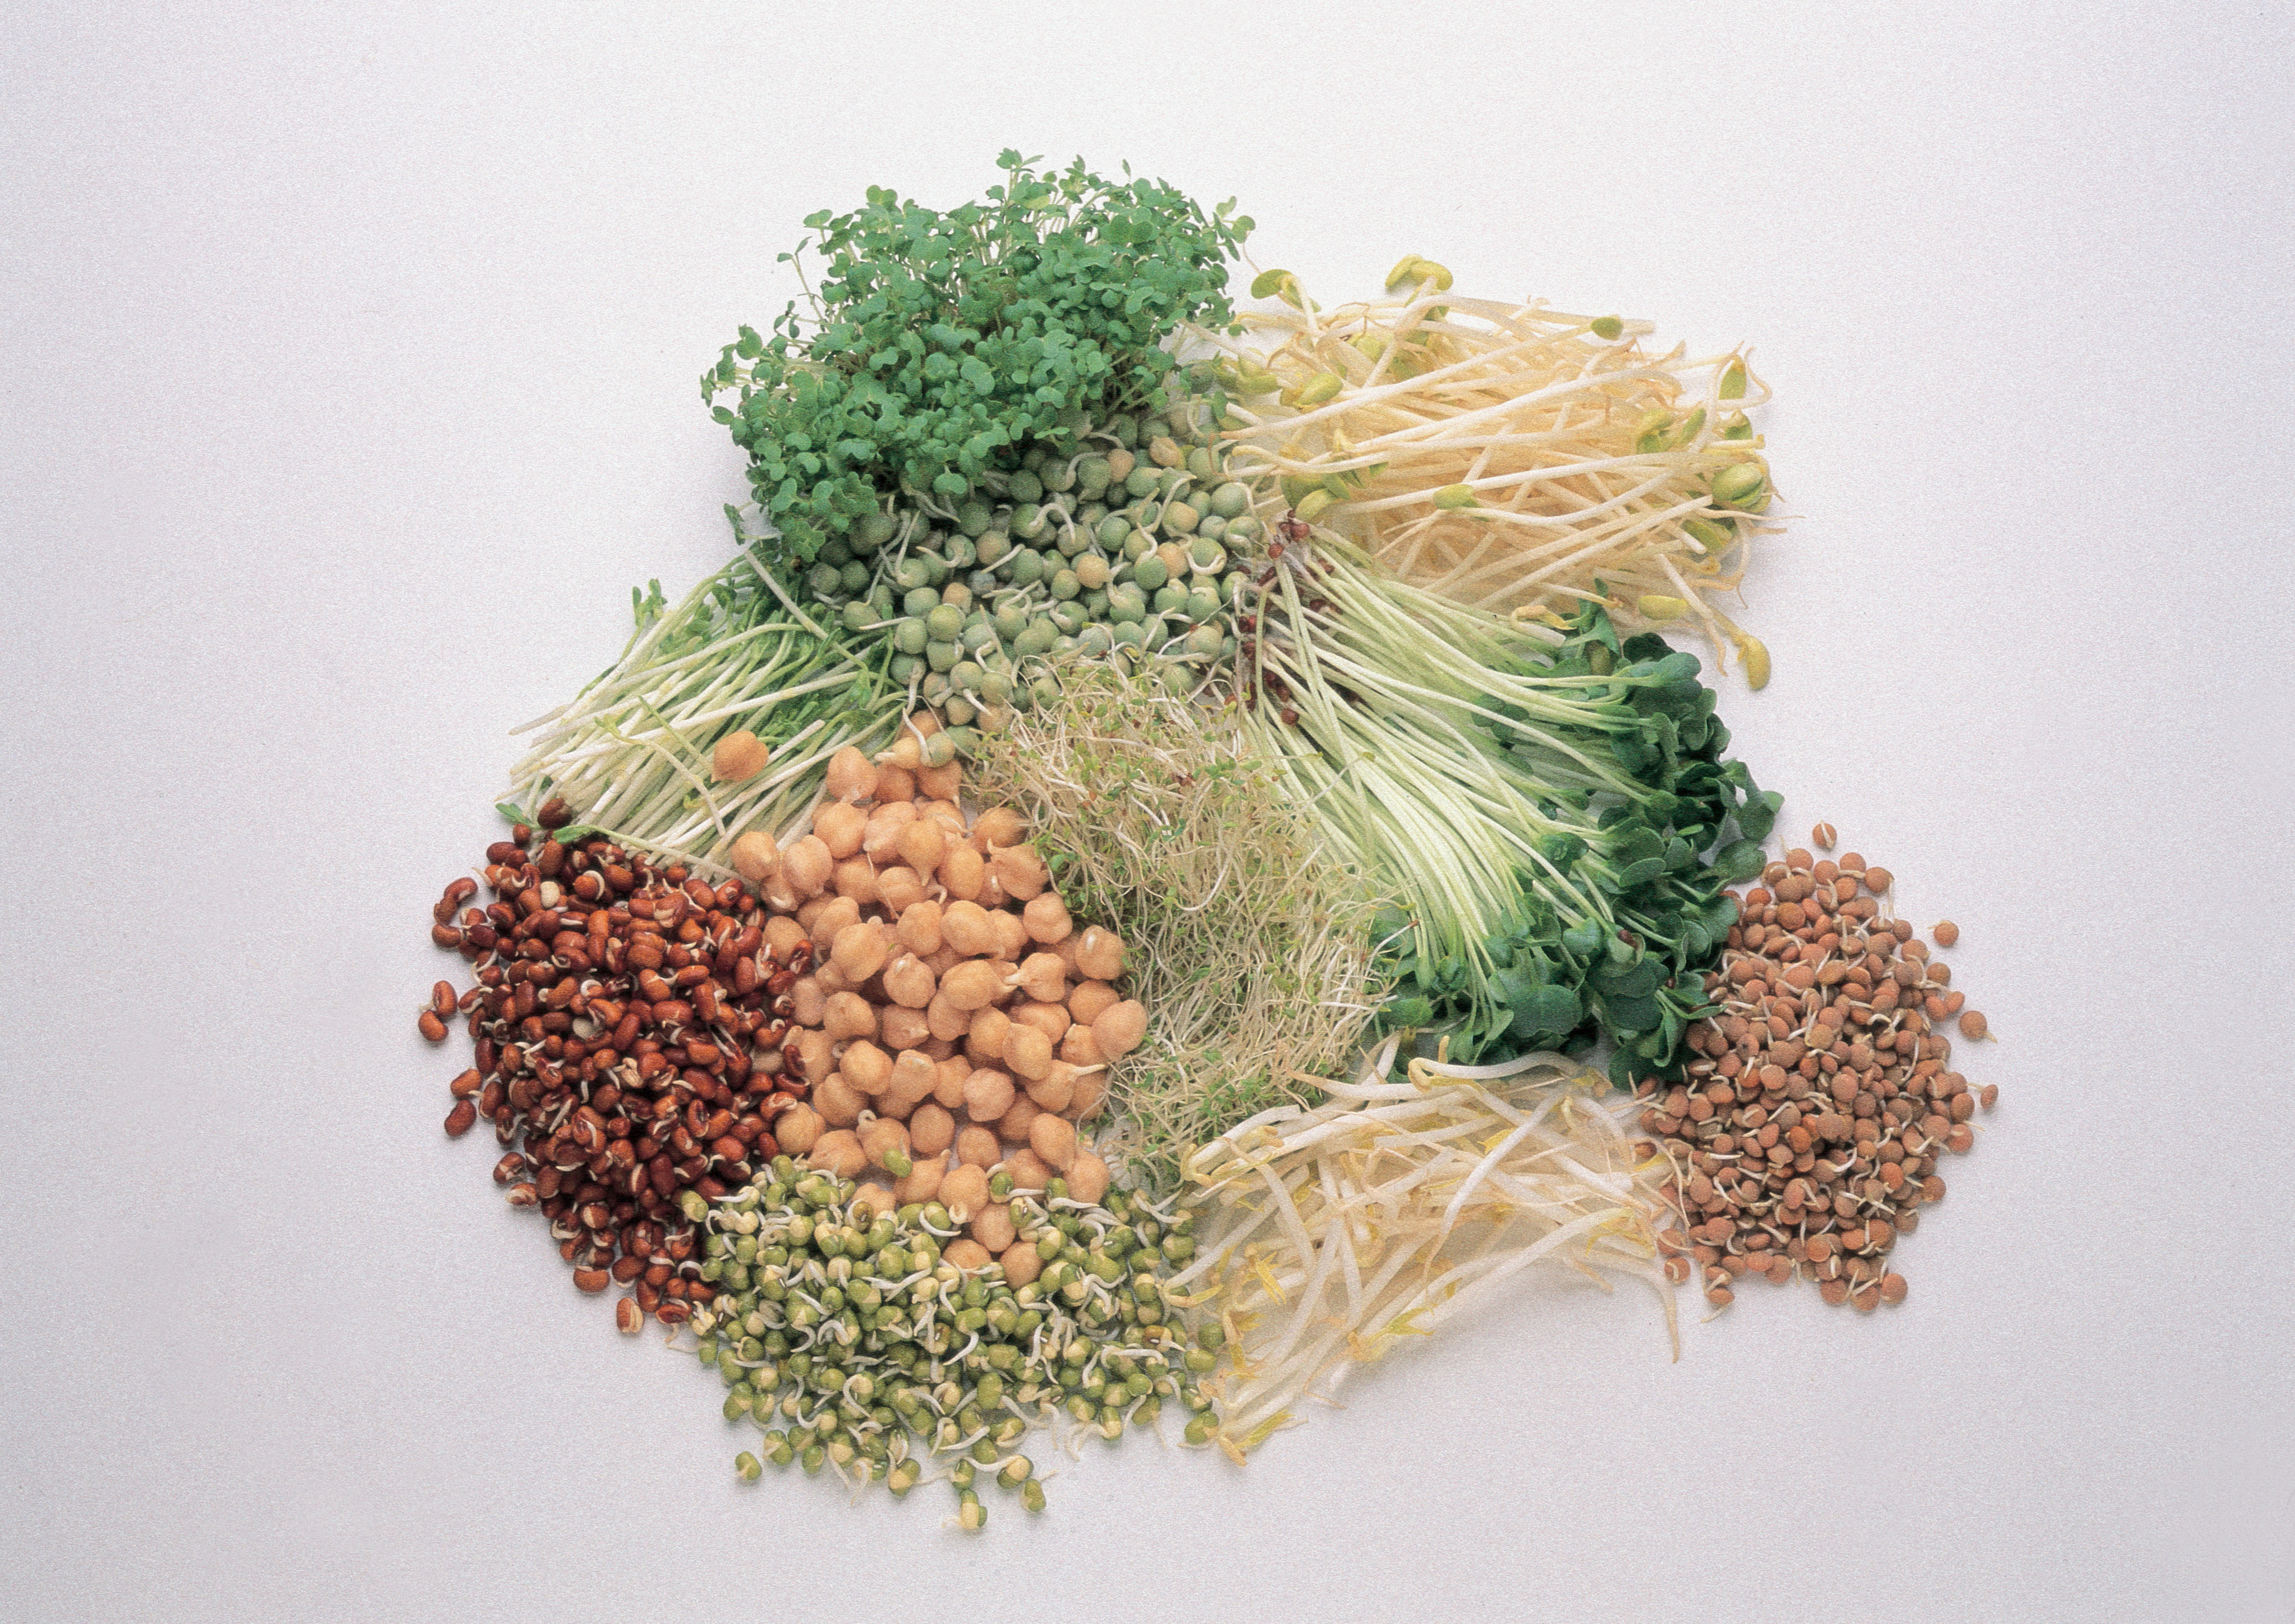 bunch of different sprouts of seeds, grains and greens in front of white background